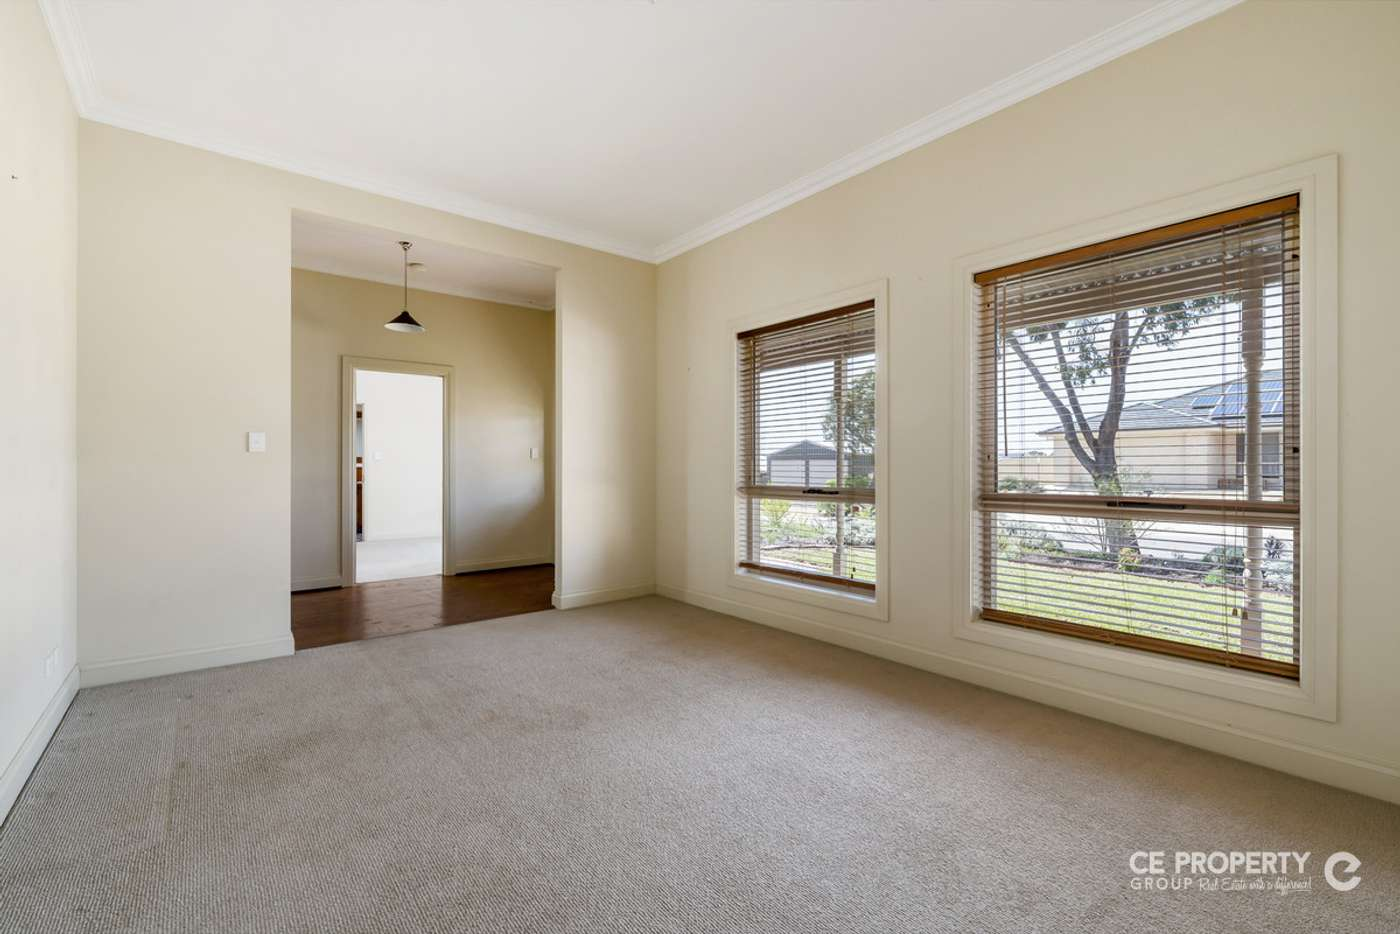 Fifth view of Homely house listing, 26 Ruby Drive, Mannum SA 5238